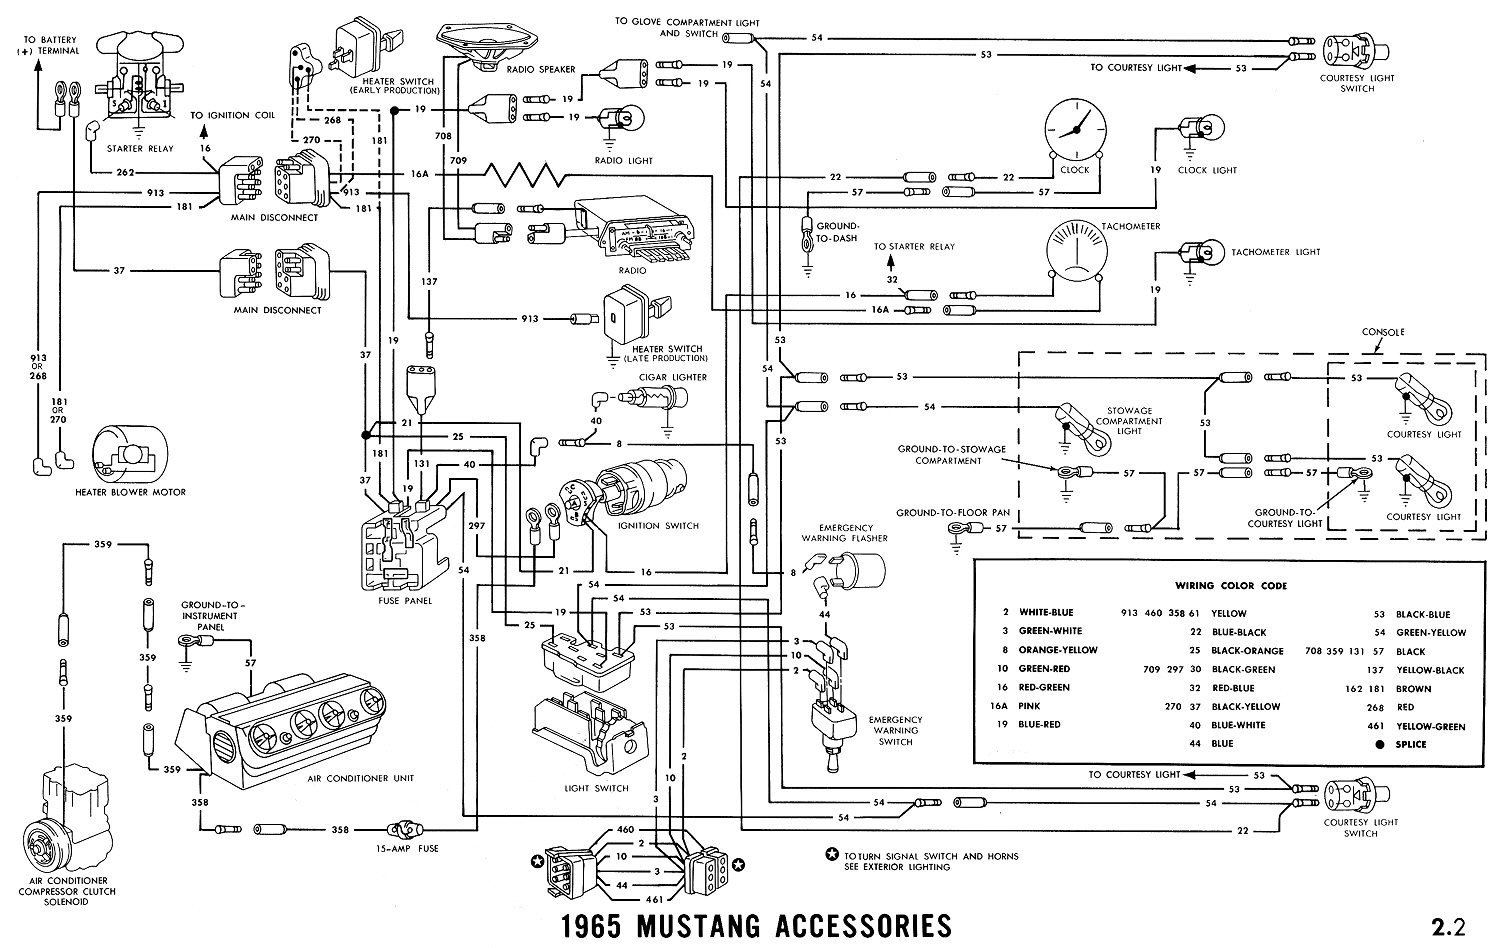 65 mustang gt wiring diagram wiring diagram 1965 mustang wiring diagrams average joe restoration rh averagejoerestoration com 91 mustang dash wiring schematic diagram publicscrutiny Images